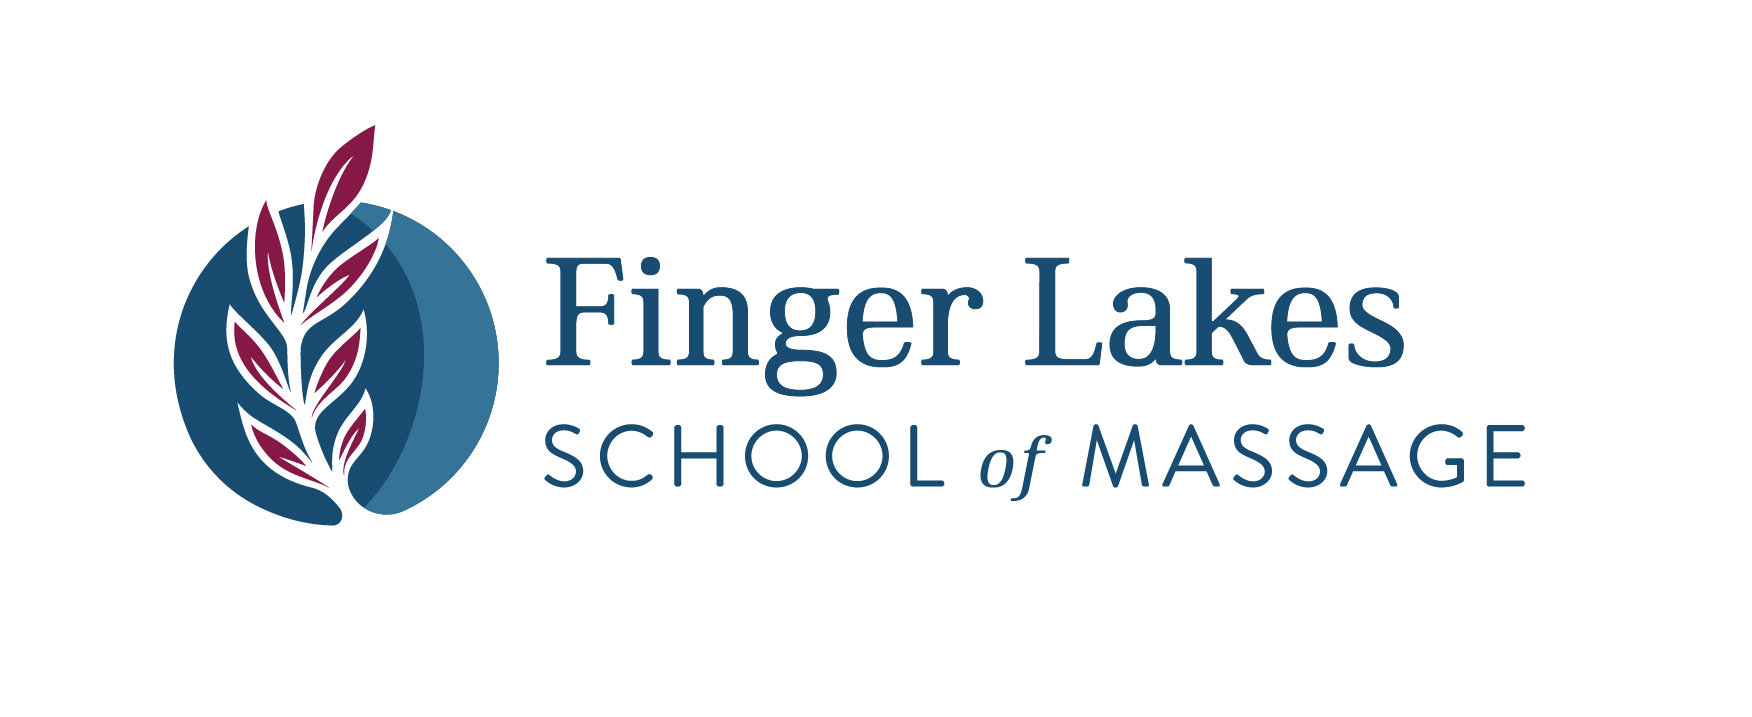 Finger Lakes School of Massage